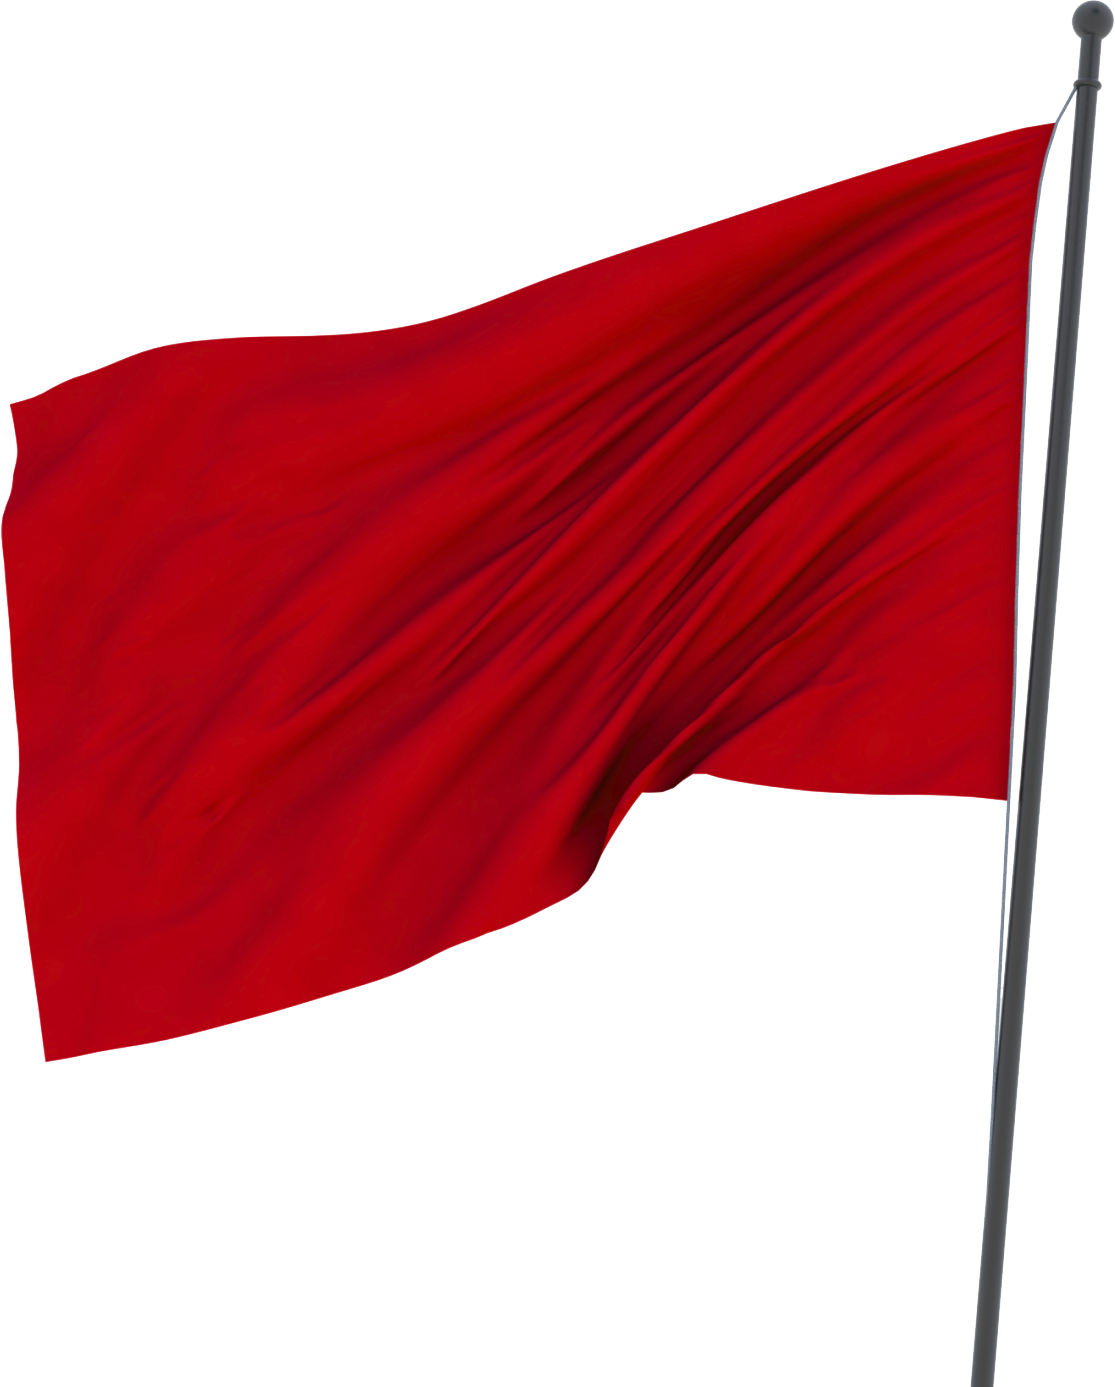 Red . Flag png image royalty free download